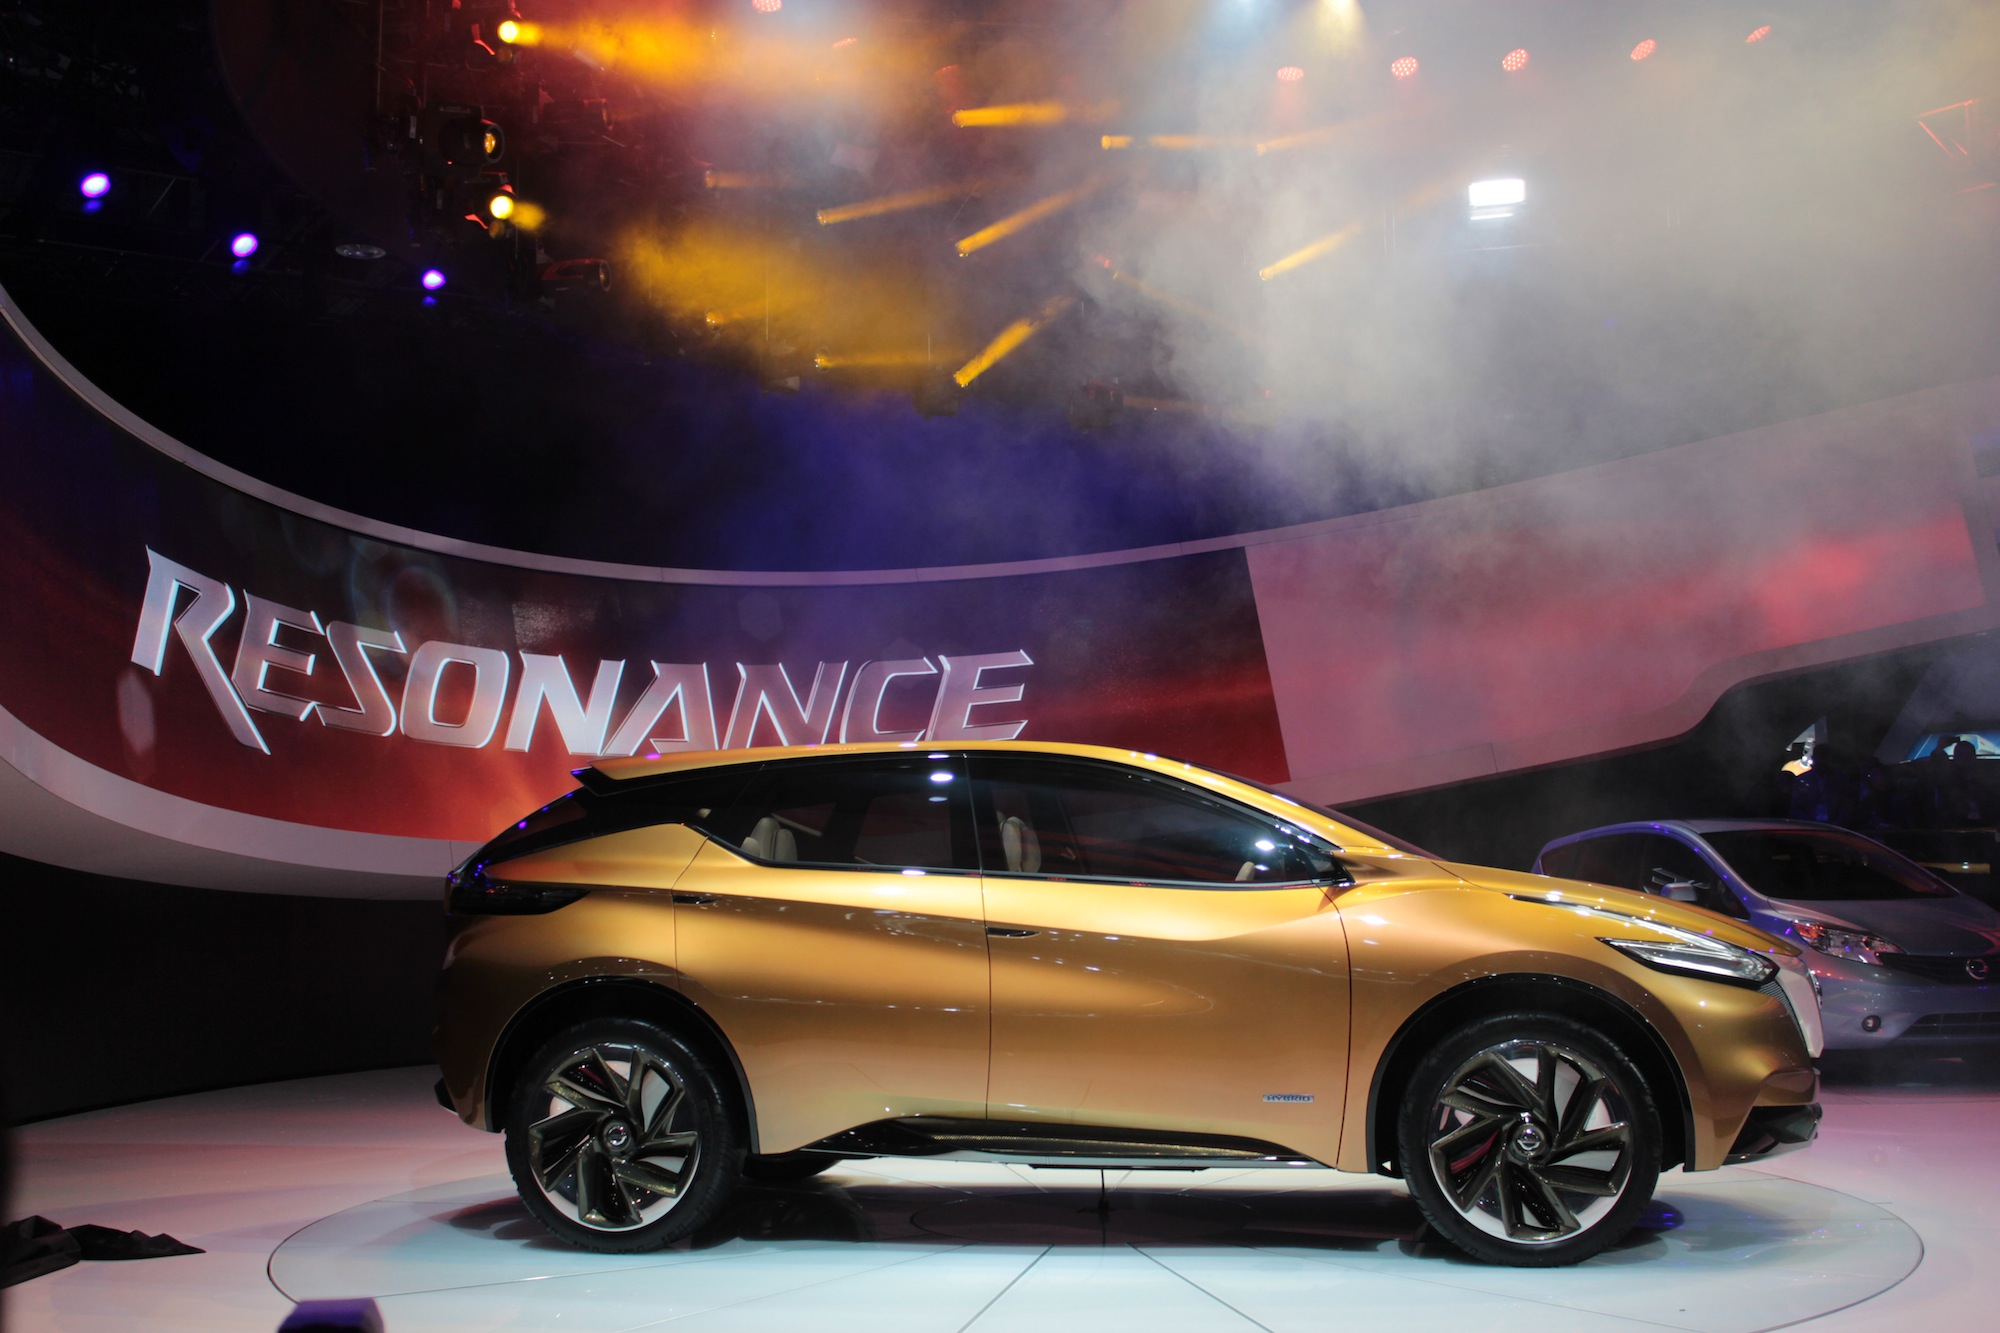 Nissan Resonance Concept Hints At The Next Murano Detroit Auto Show - Next auto show